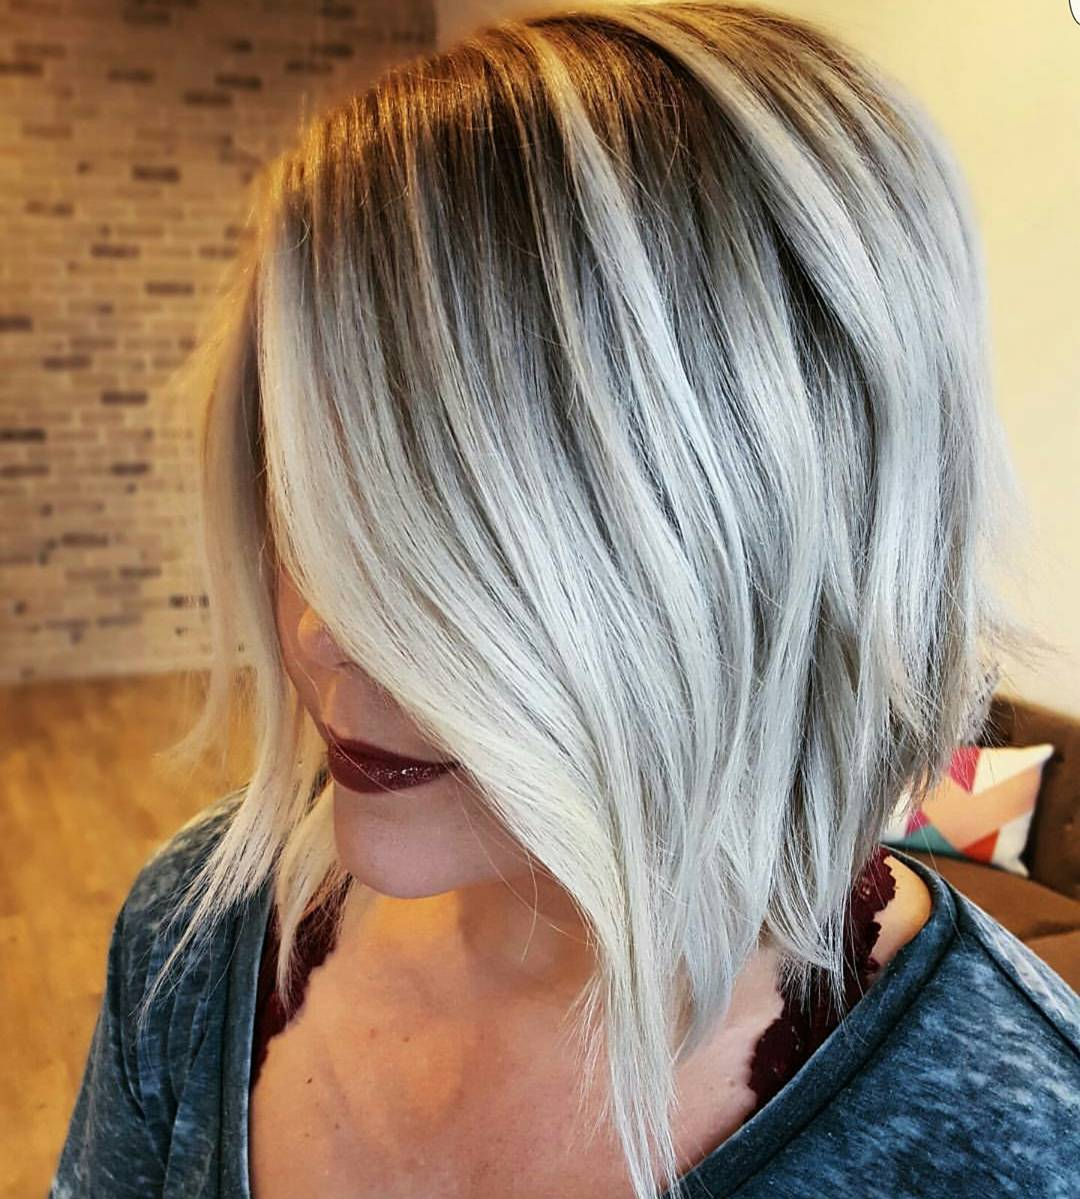 Pictures Of Short Blonde Hair